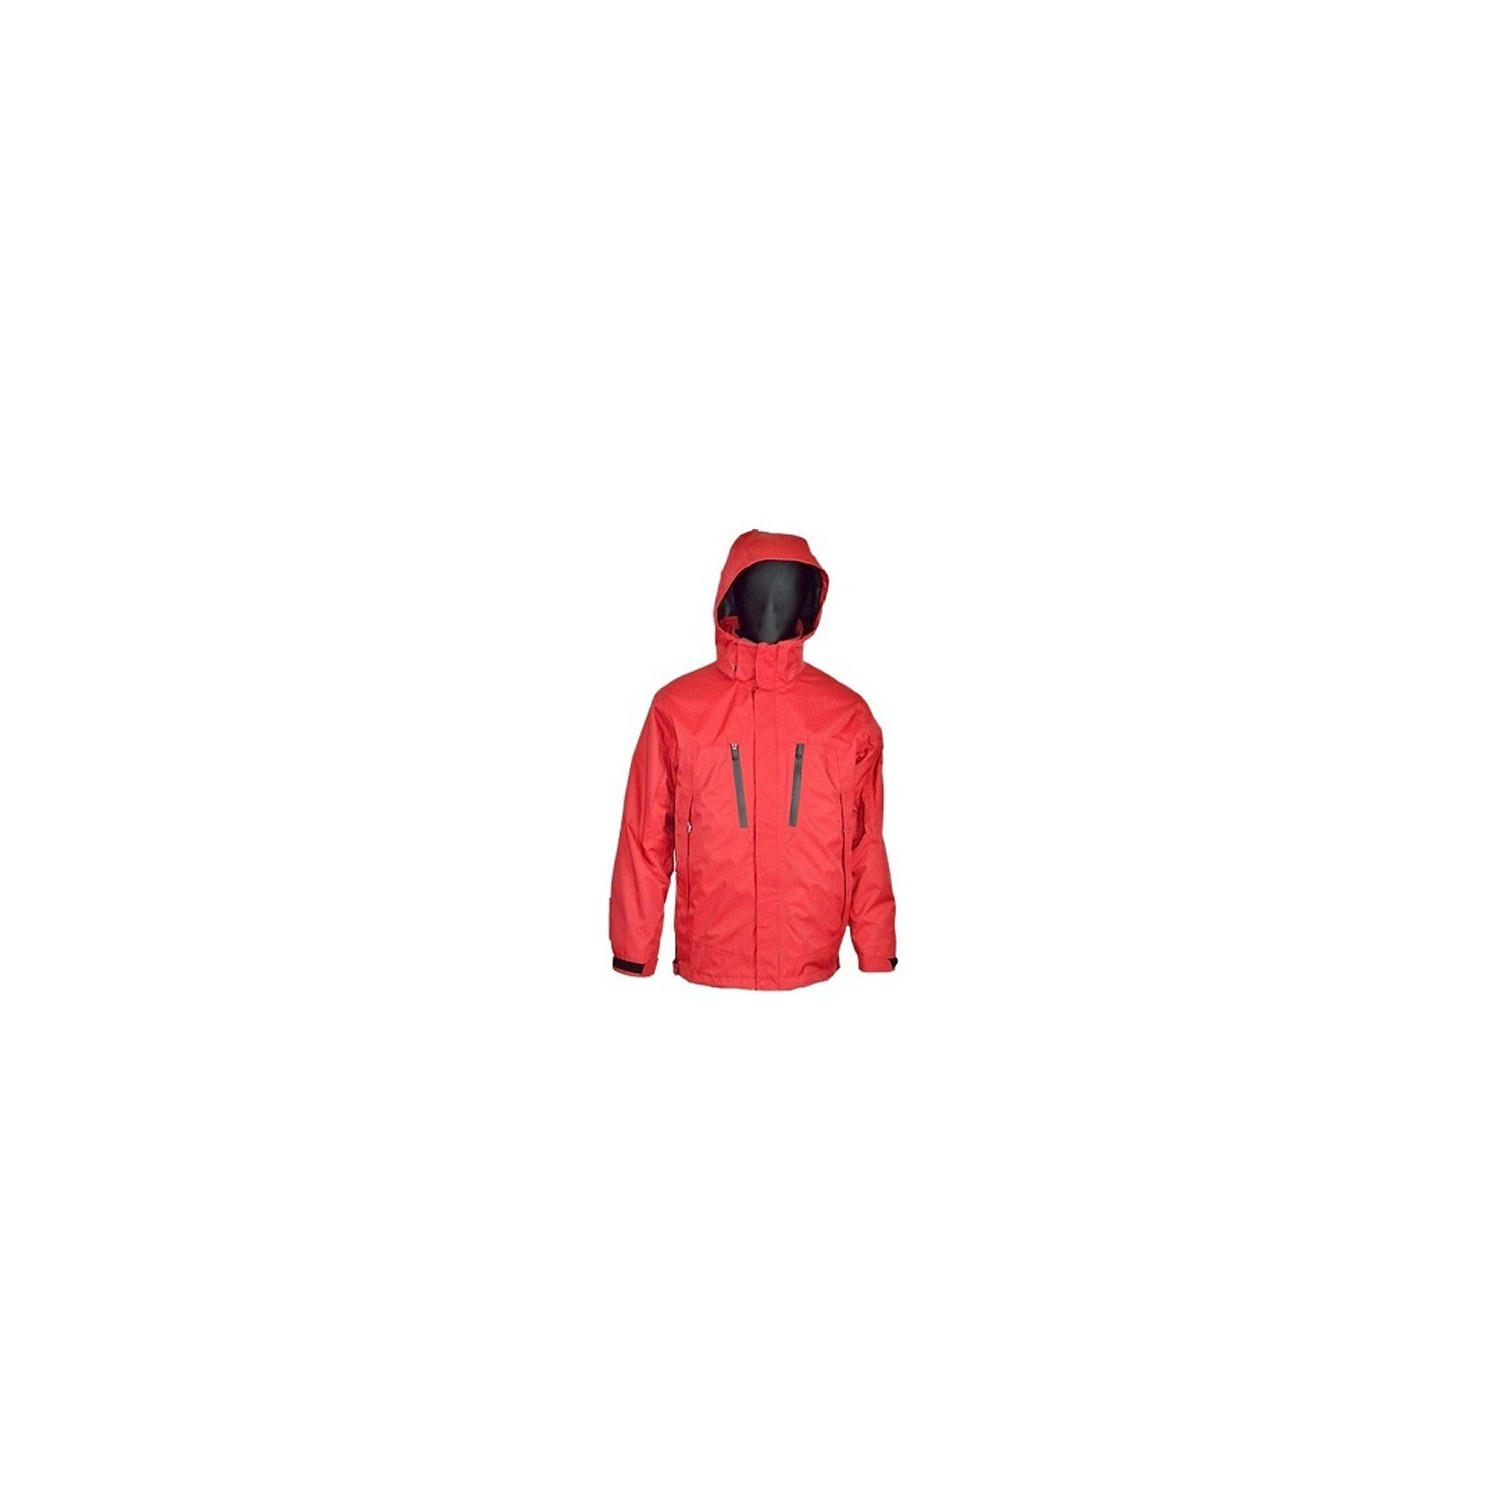 SERIE 24-7 PARKA 3IN1 RED ELEMENT